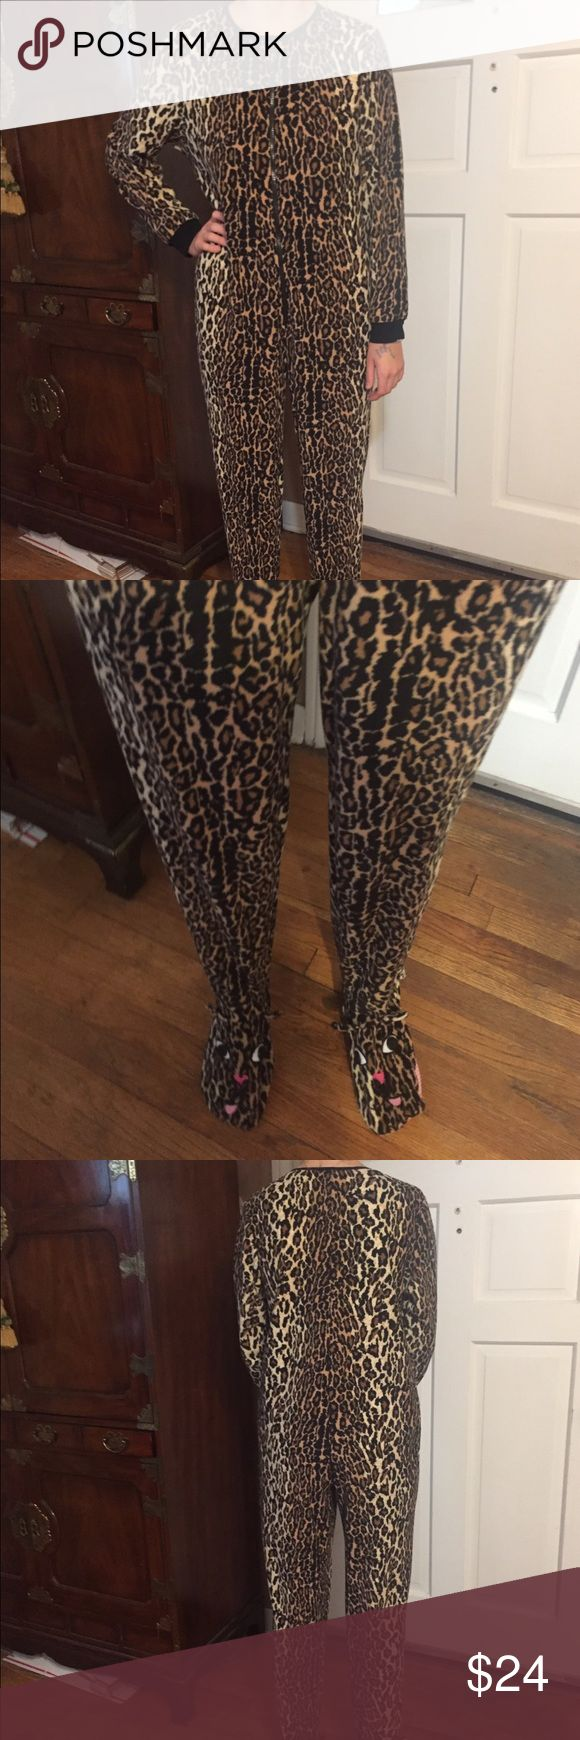 Nick & Nora Footed Leopard Pajamas. Size S Nick & Nora footless pajama as. Leopard print. Oh so comfy and cute. Excellent condition. Nick & Nora Intimates & Sleepwear Pajamas